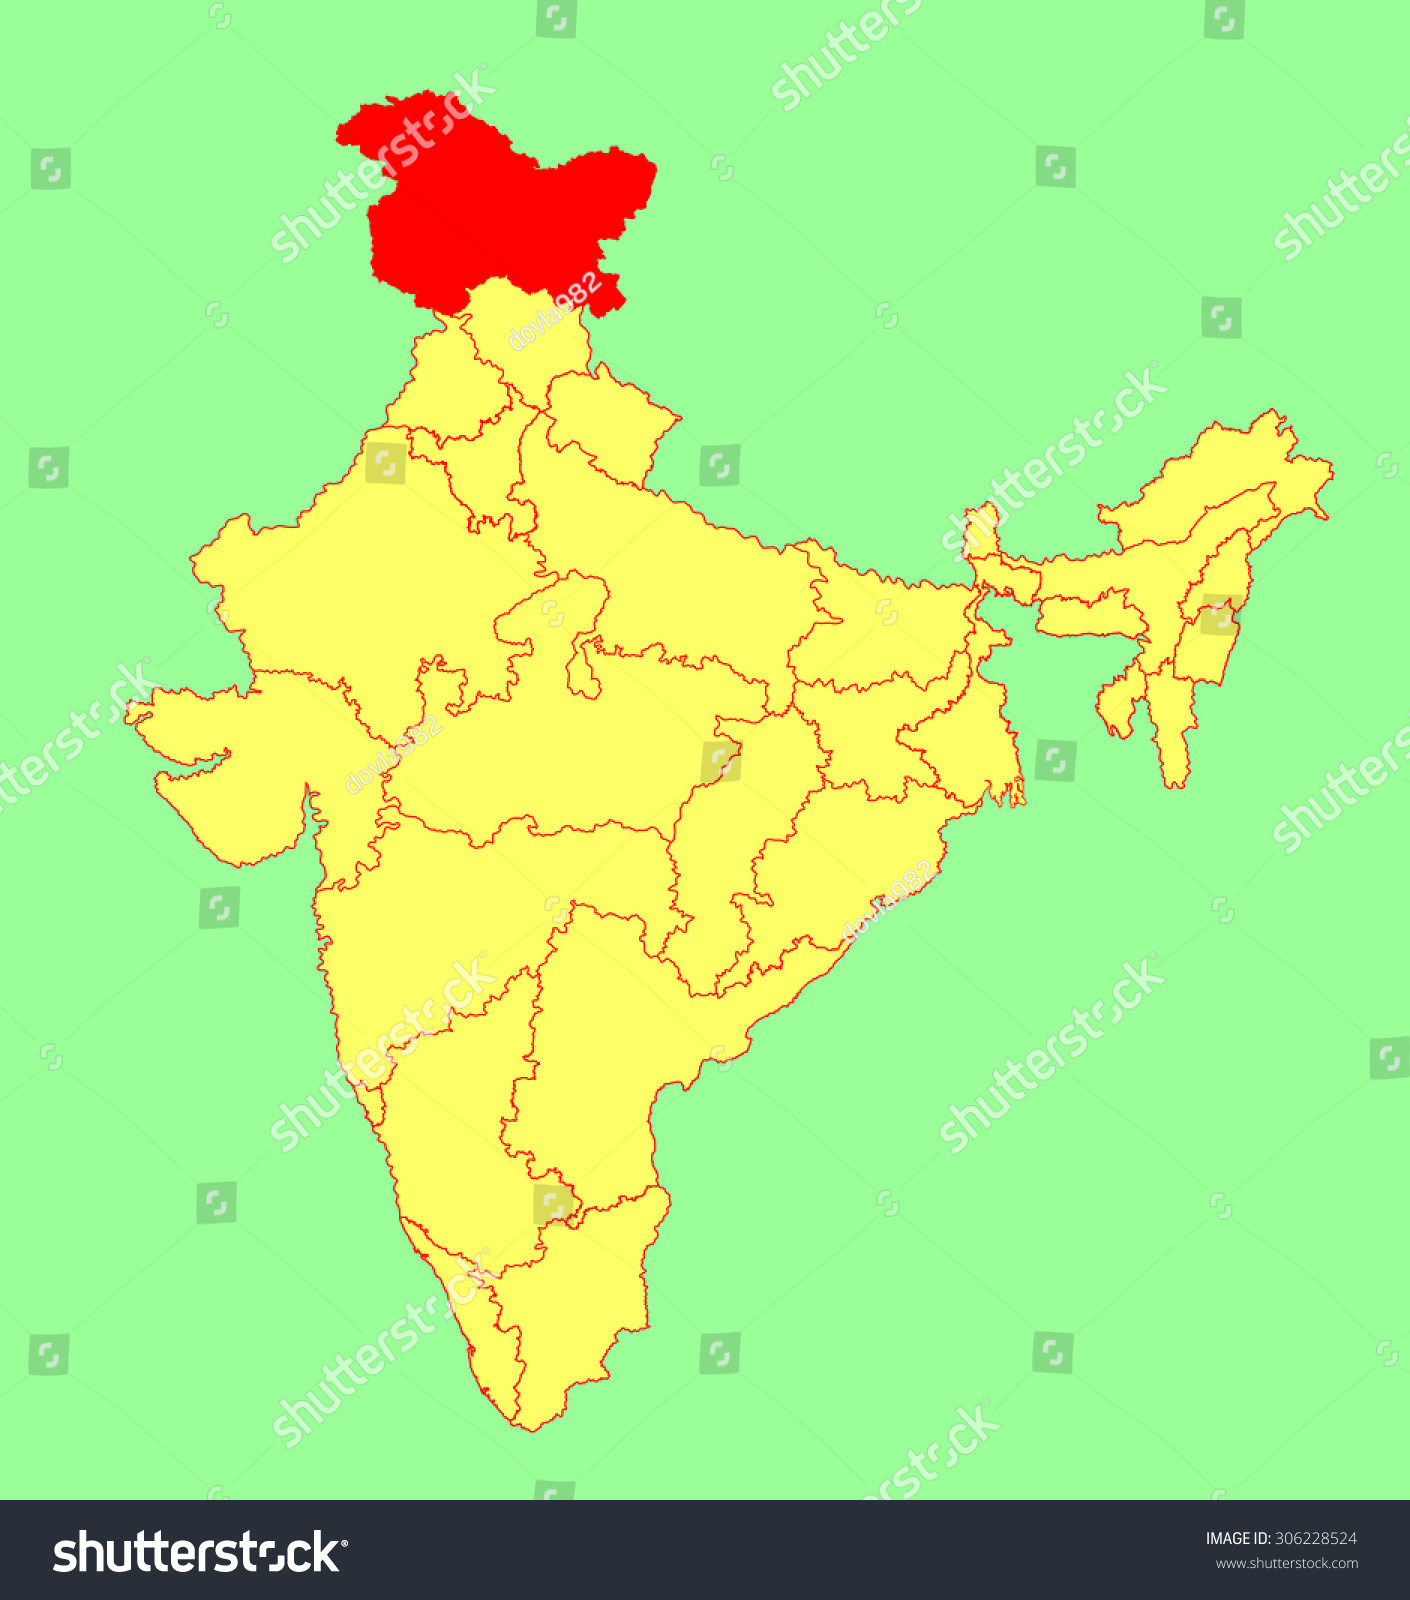 state, India, vector map silhouette illustration isolated on India map ...